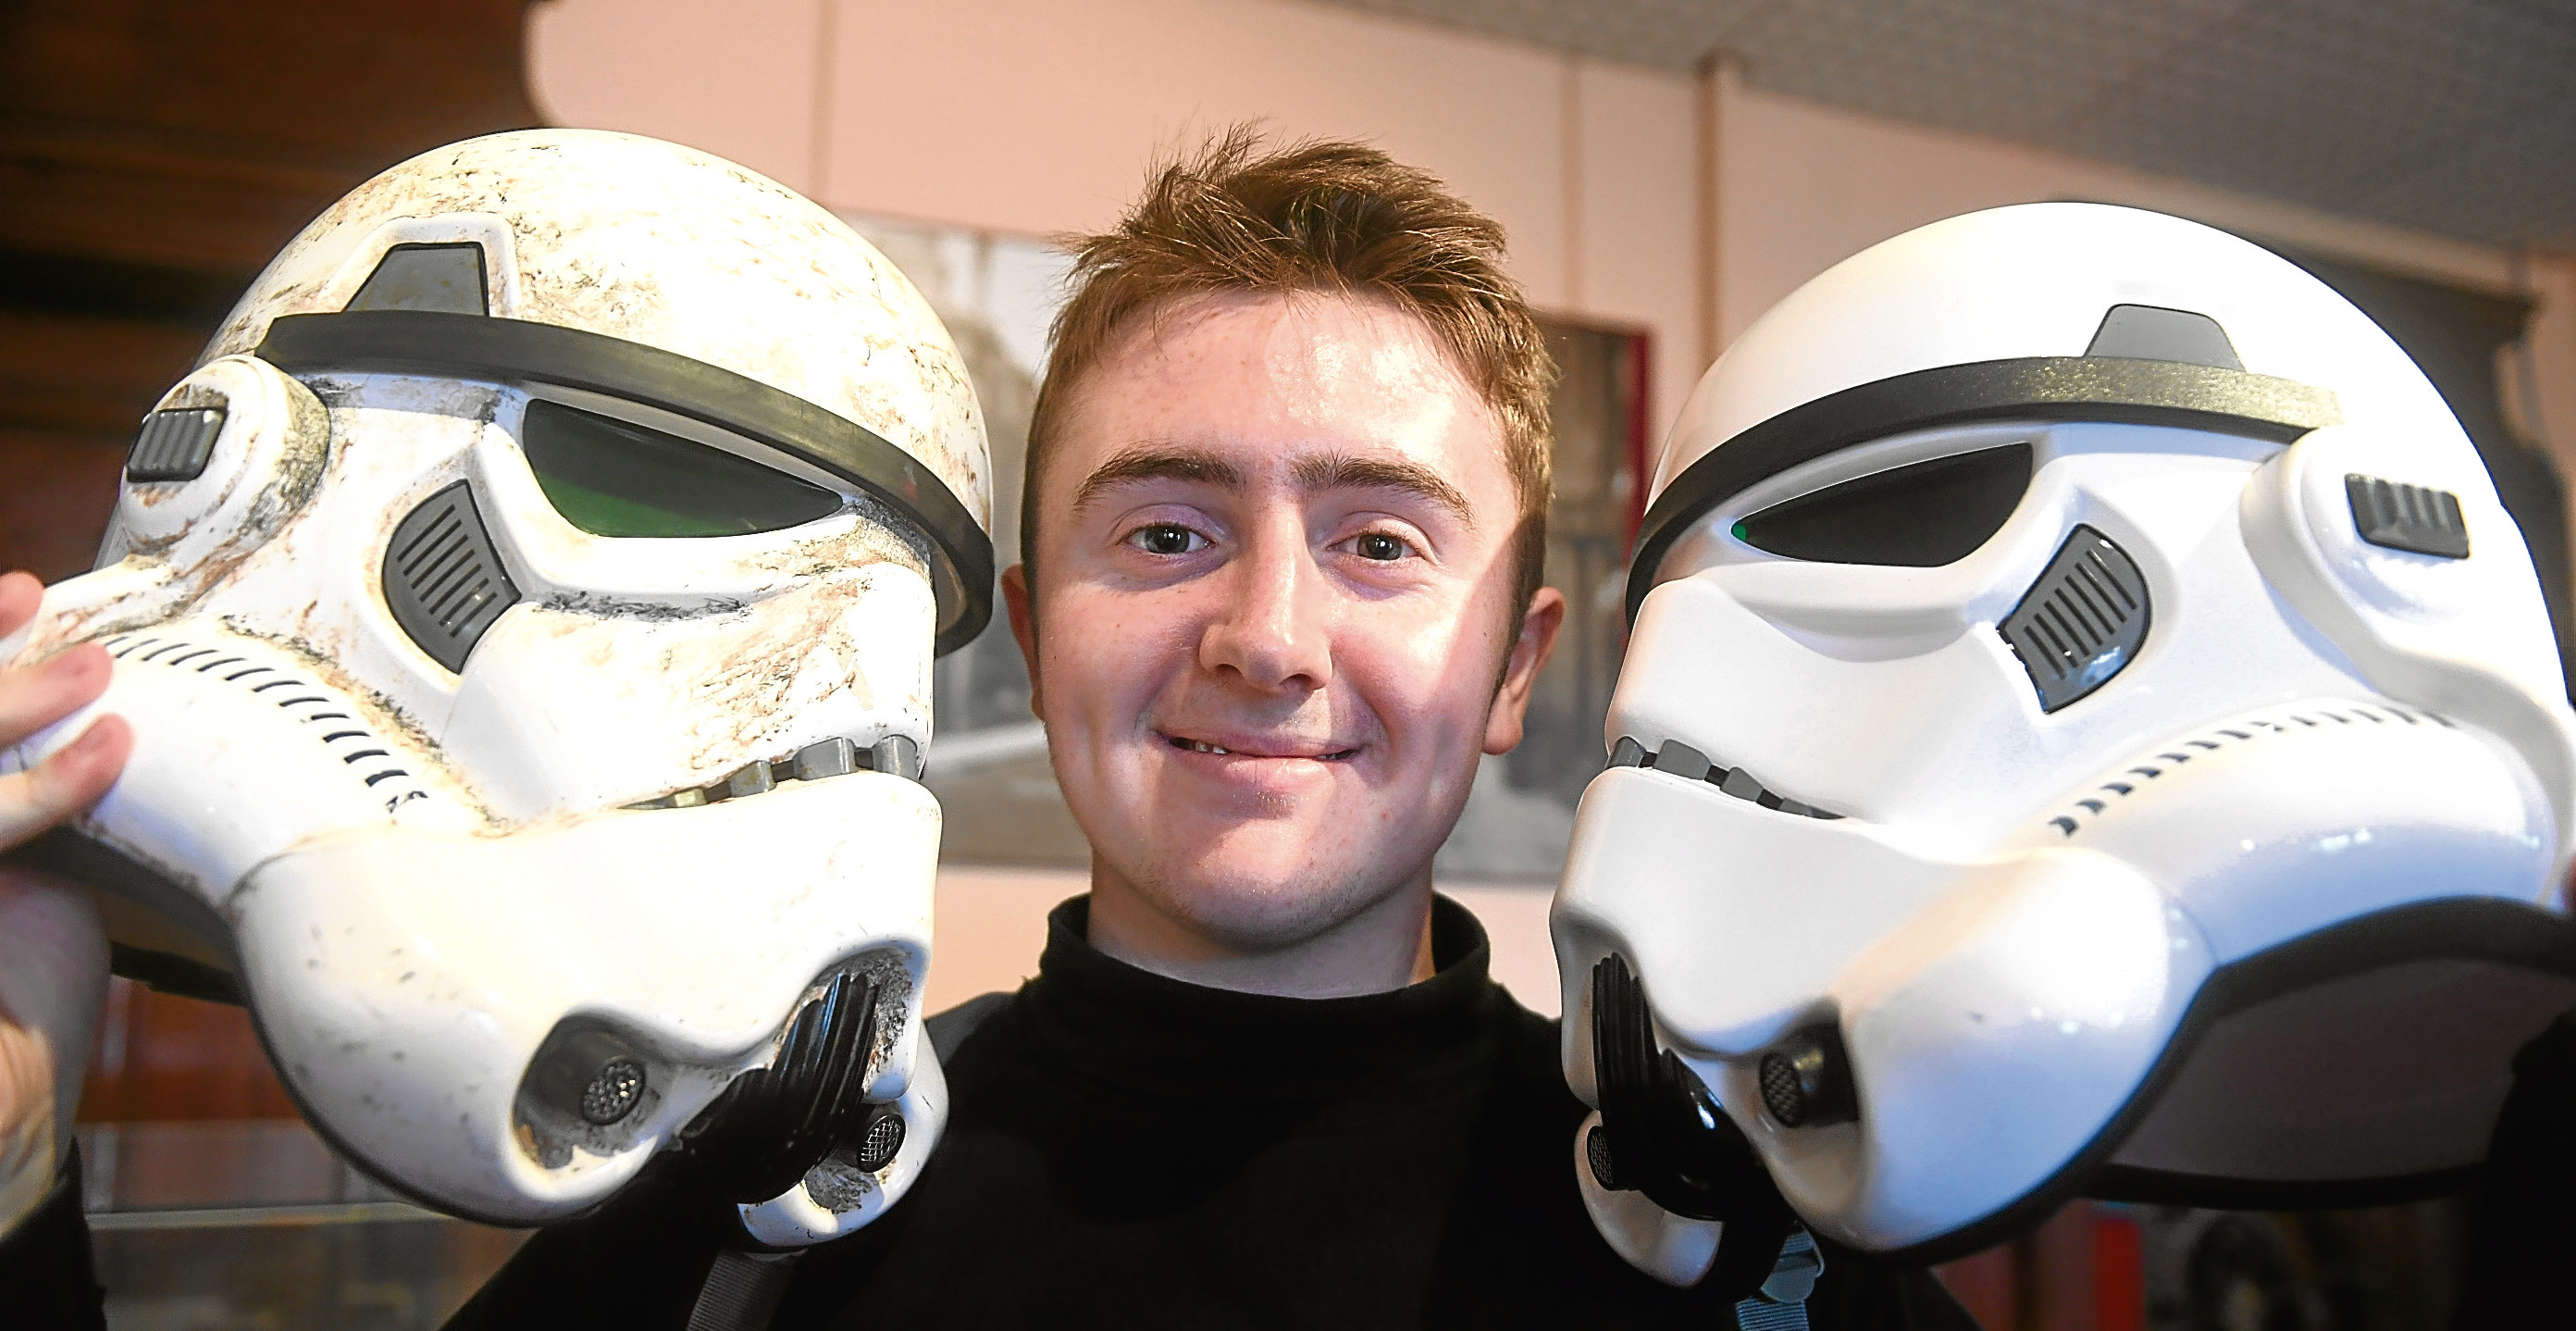 Andrew Stephen with two Stormtrooper helmets.